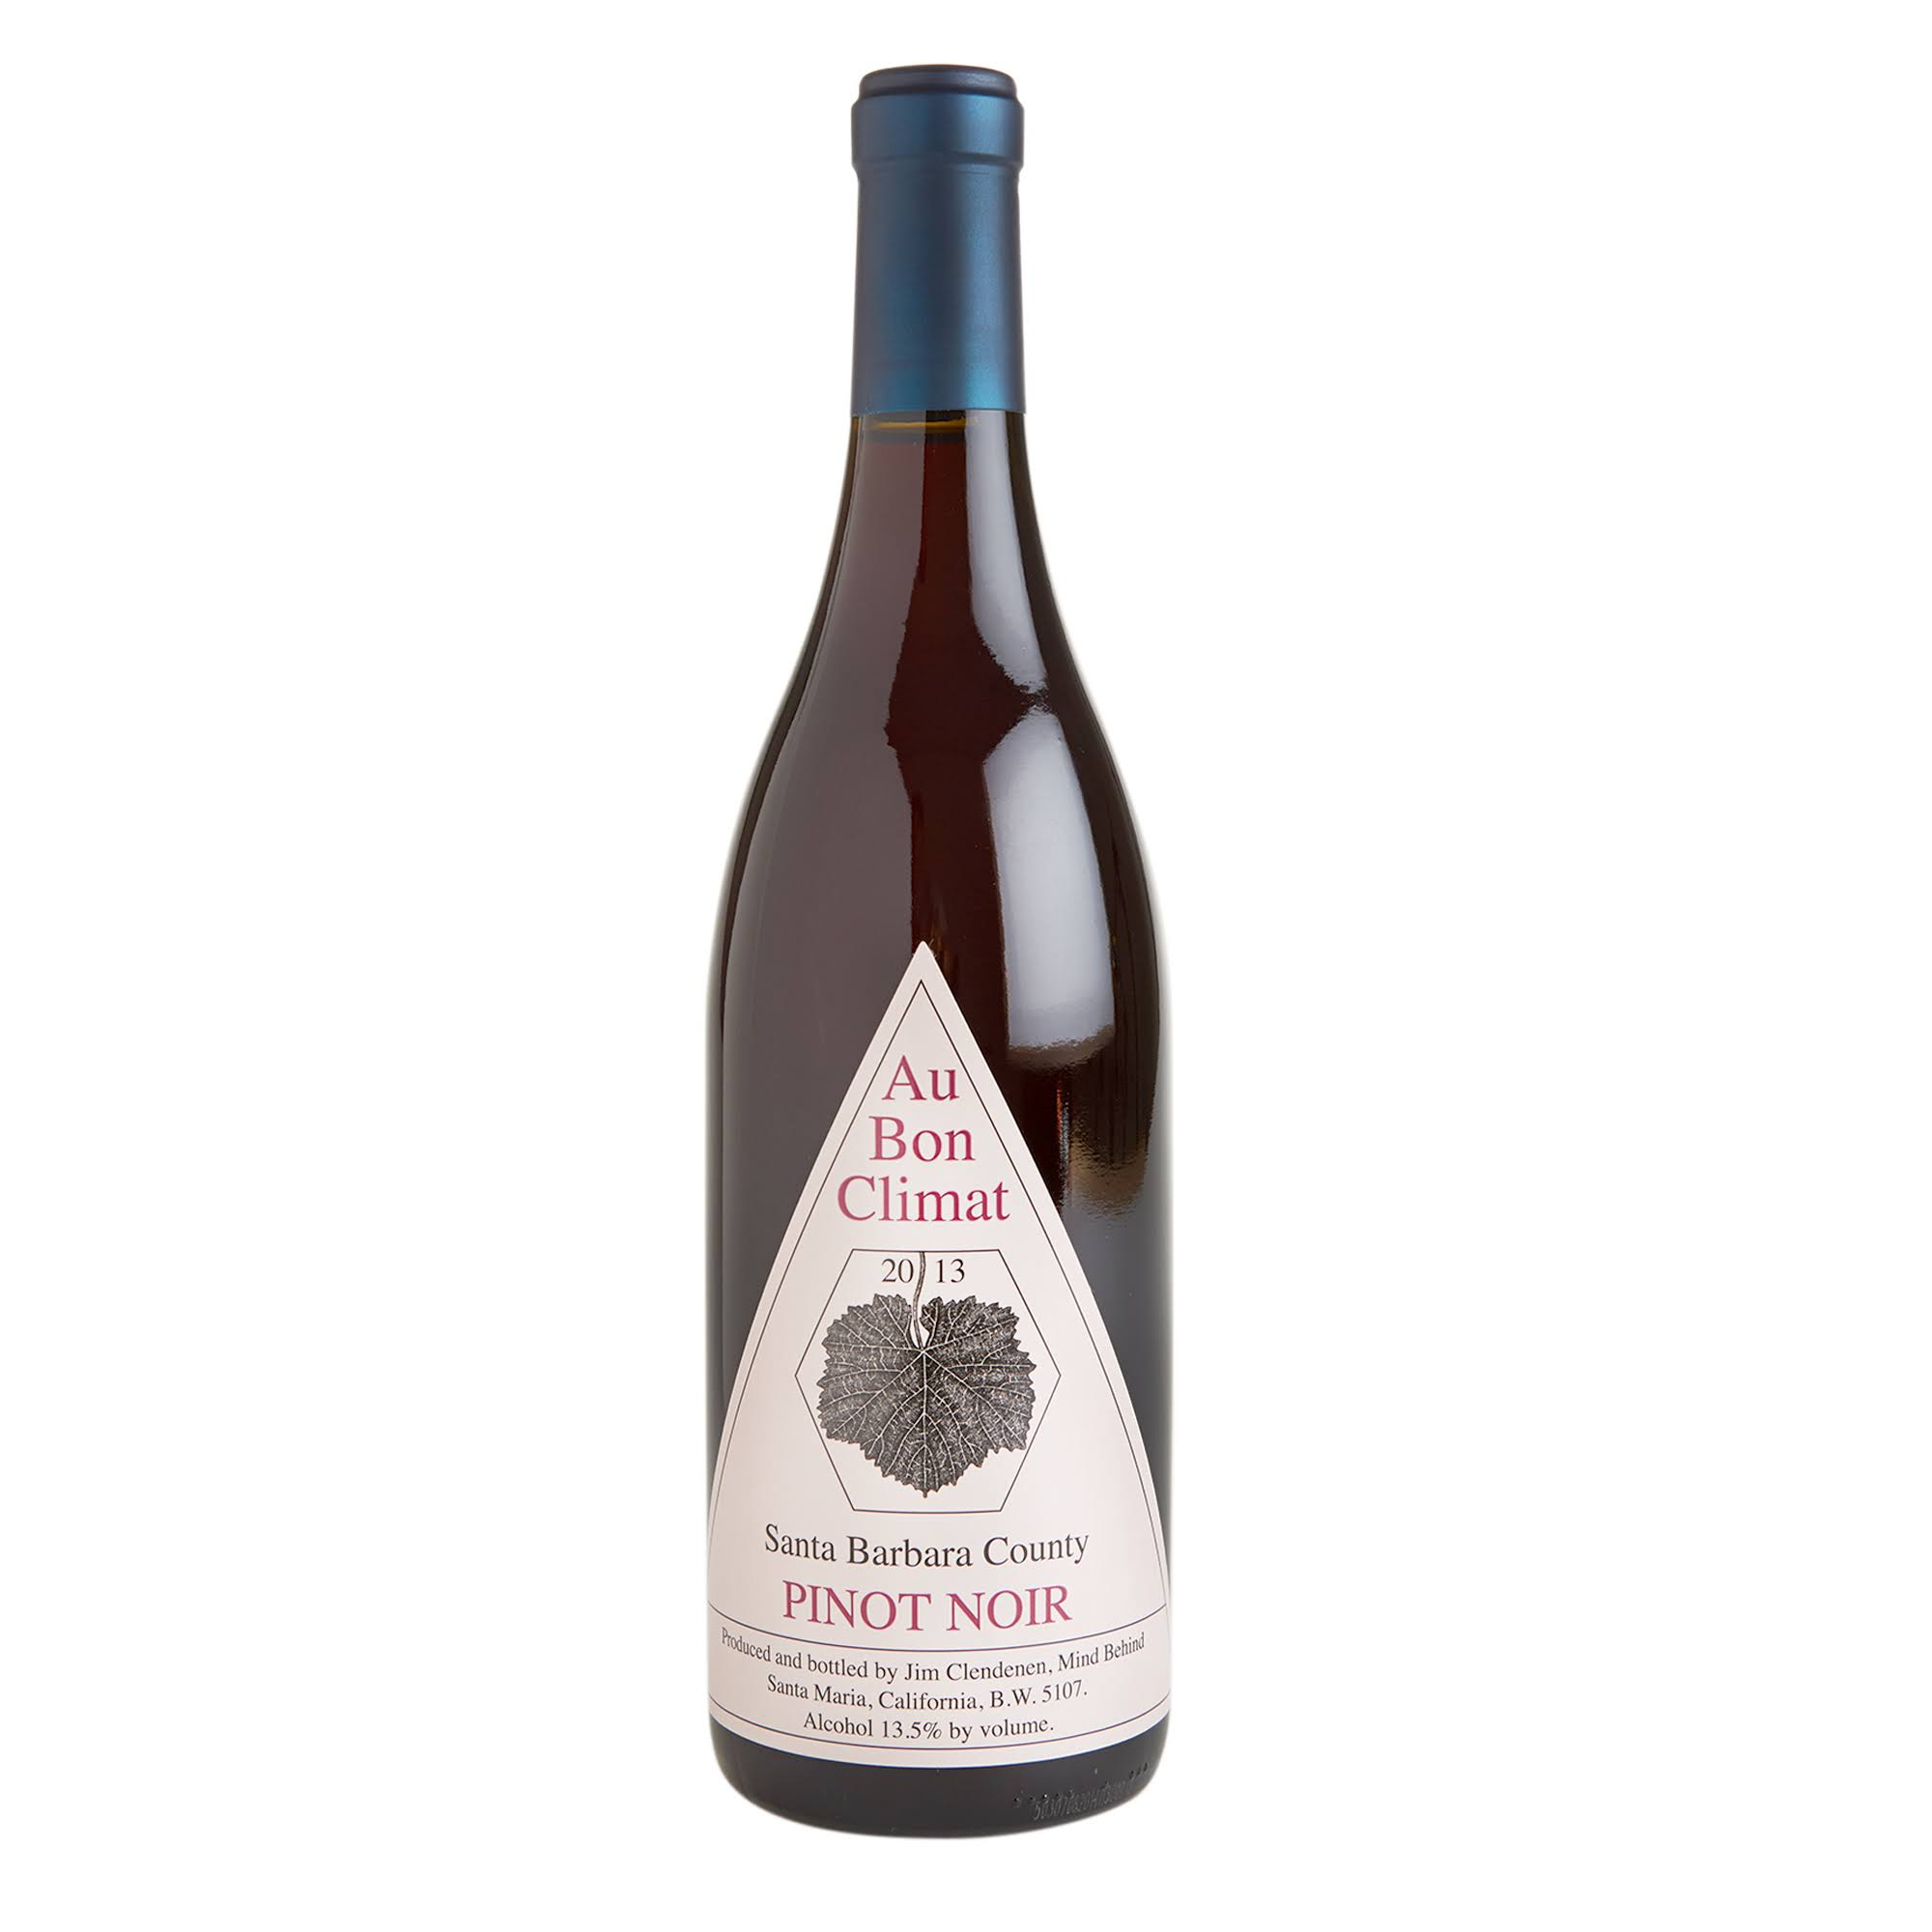 Au Bon Climat Pinot Noir, Santa Barbara County (Vintage Varies) - 750 ml bottle